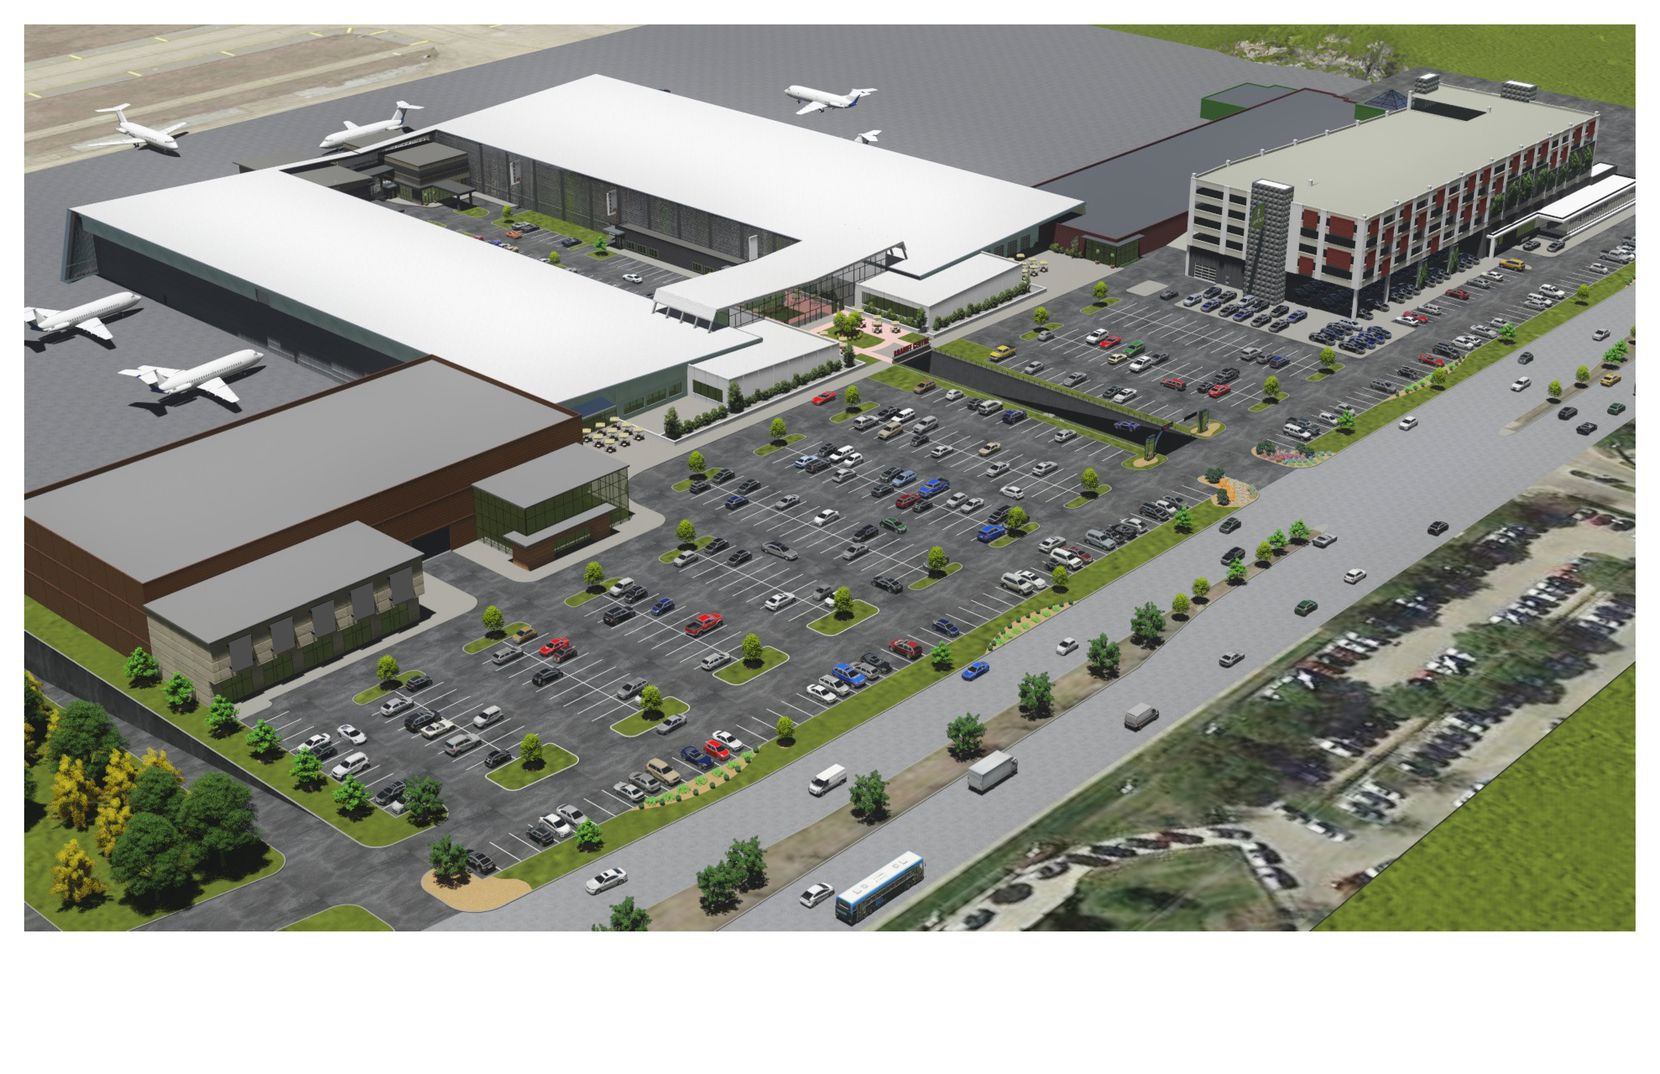 The redeveloped aviation complex will be called Braniff Centre.